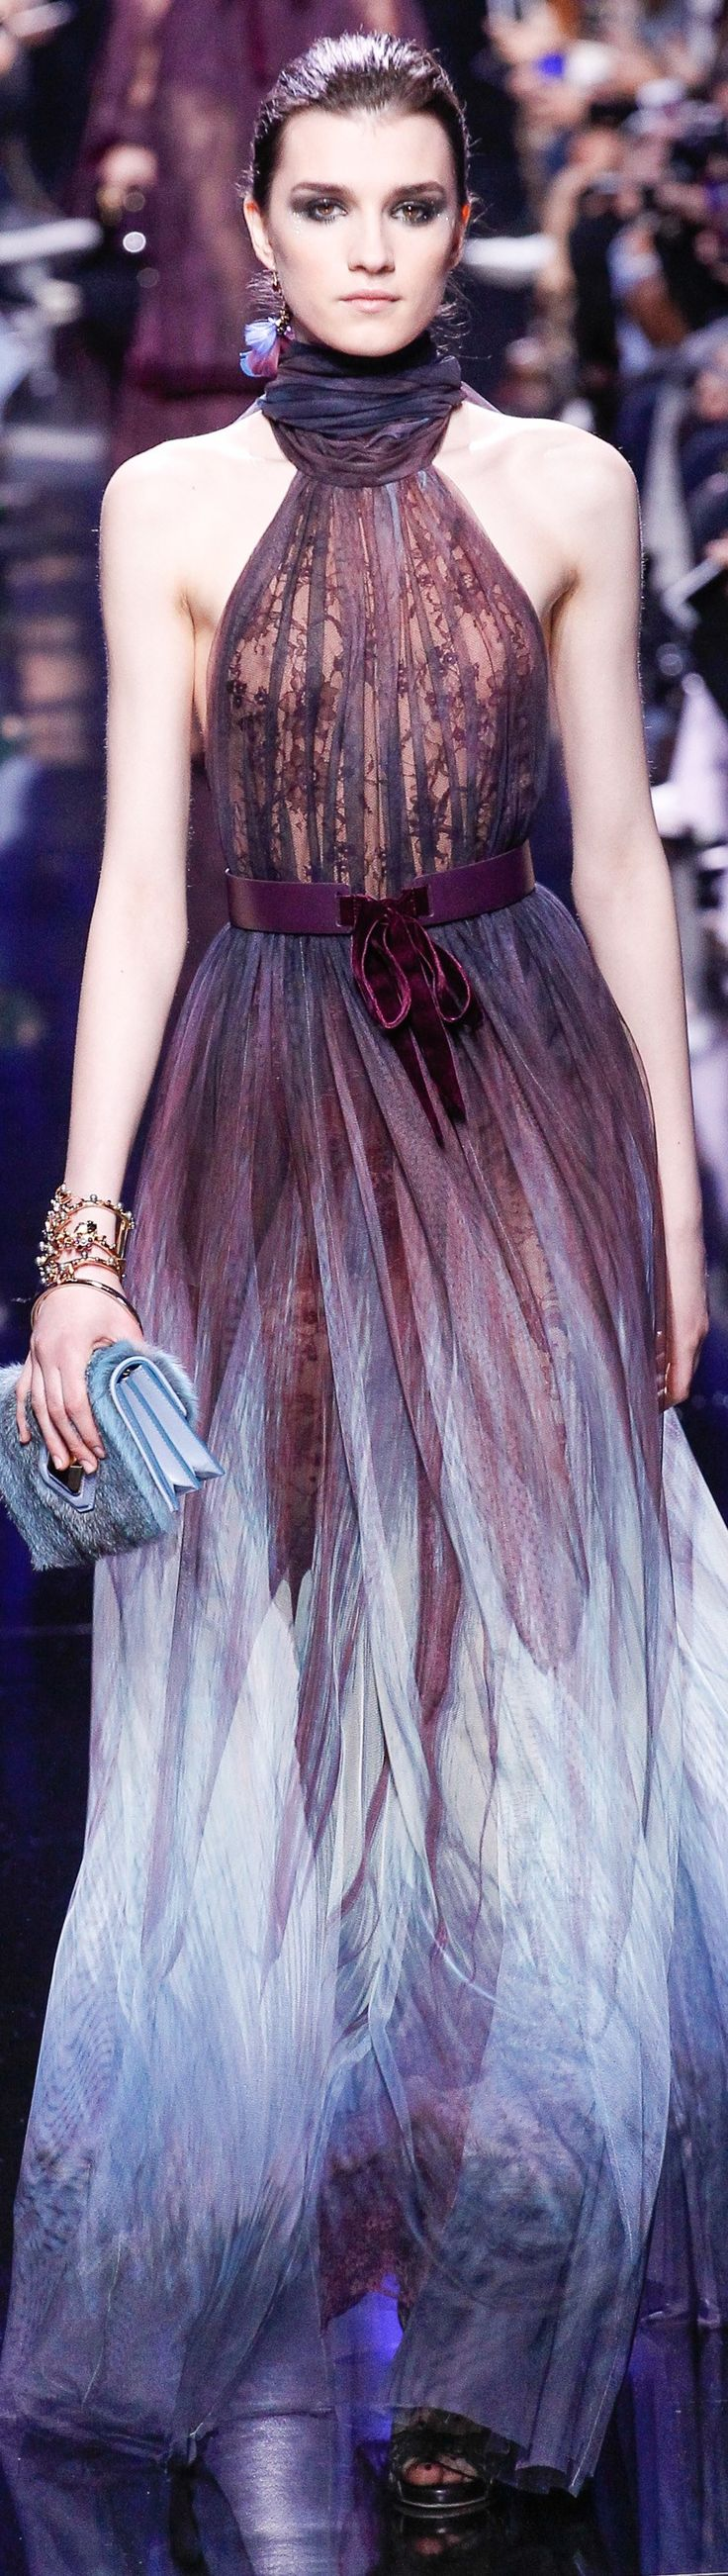 Elie Saab Fall 2017 RTW https://www.etsy.com/shop/SowingAcorns?ref=shop_sugg Silk scarves - hand dyed scarves - tie dyed scarves – Christmas scarf – unique scarf - cotton scarves – gameday scarves - womens accessories - handmade in USA - leather purses - quilted tote bags - purses – totes - handbags